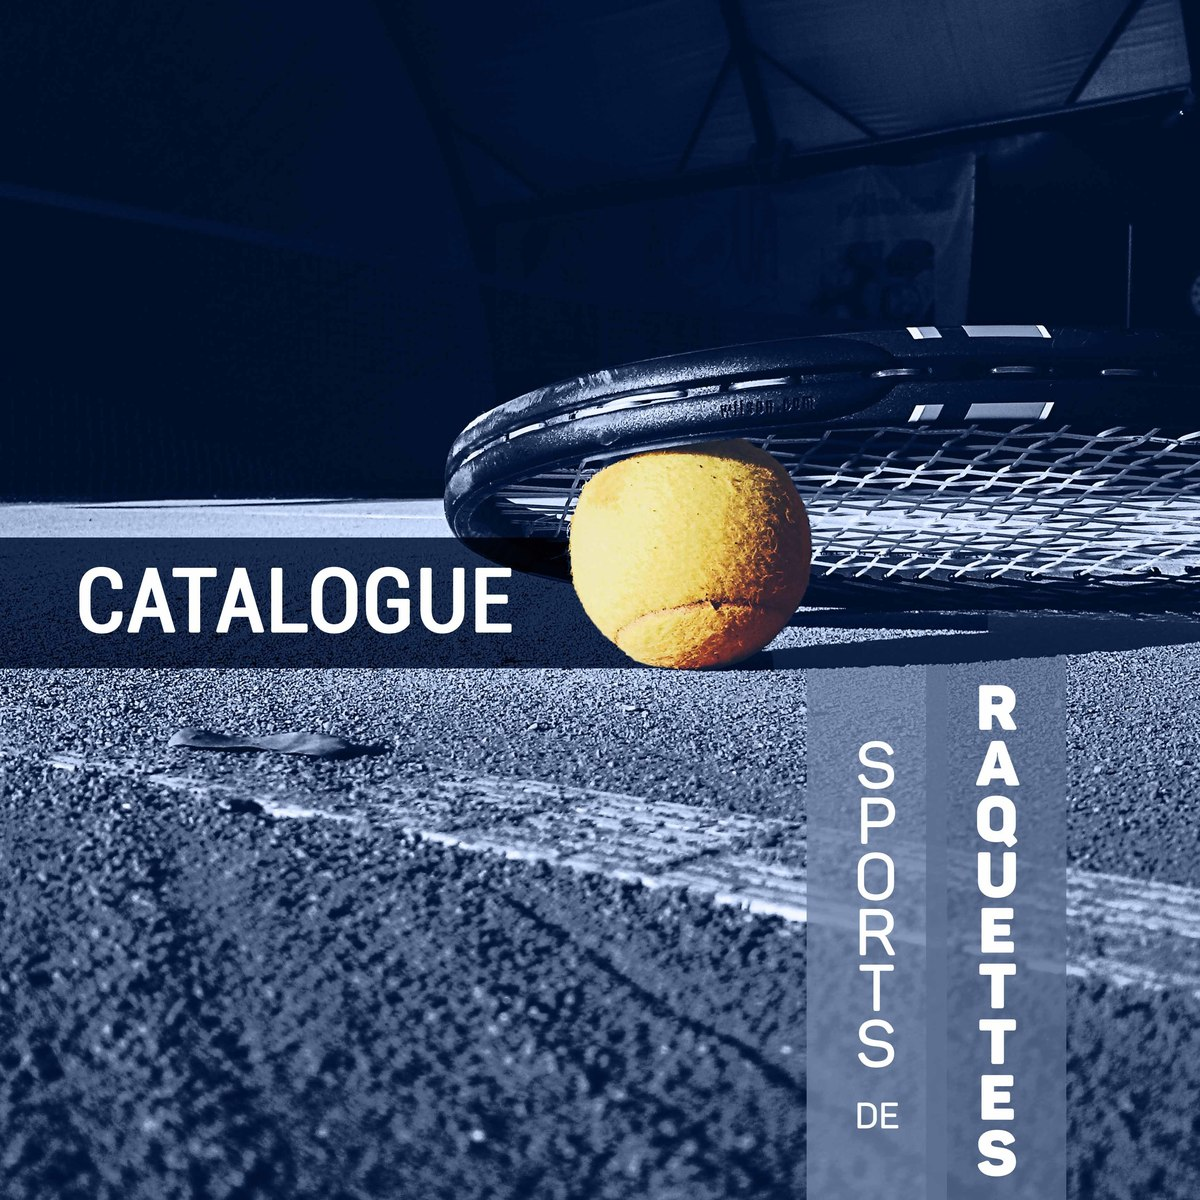 Image_catalogue-tennis-pre_sentation-2--0-0--afd71b62-d39f-4706-9f82-116f5b472edc